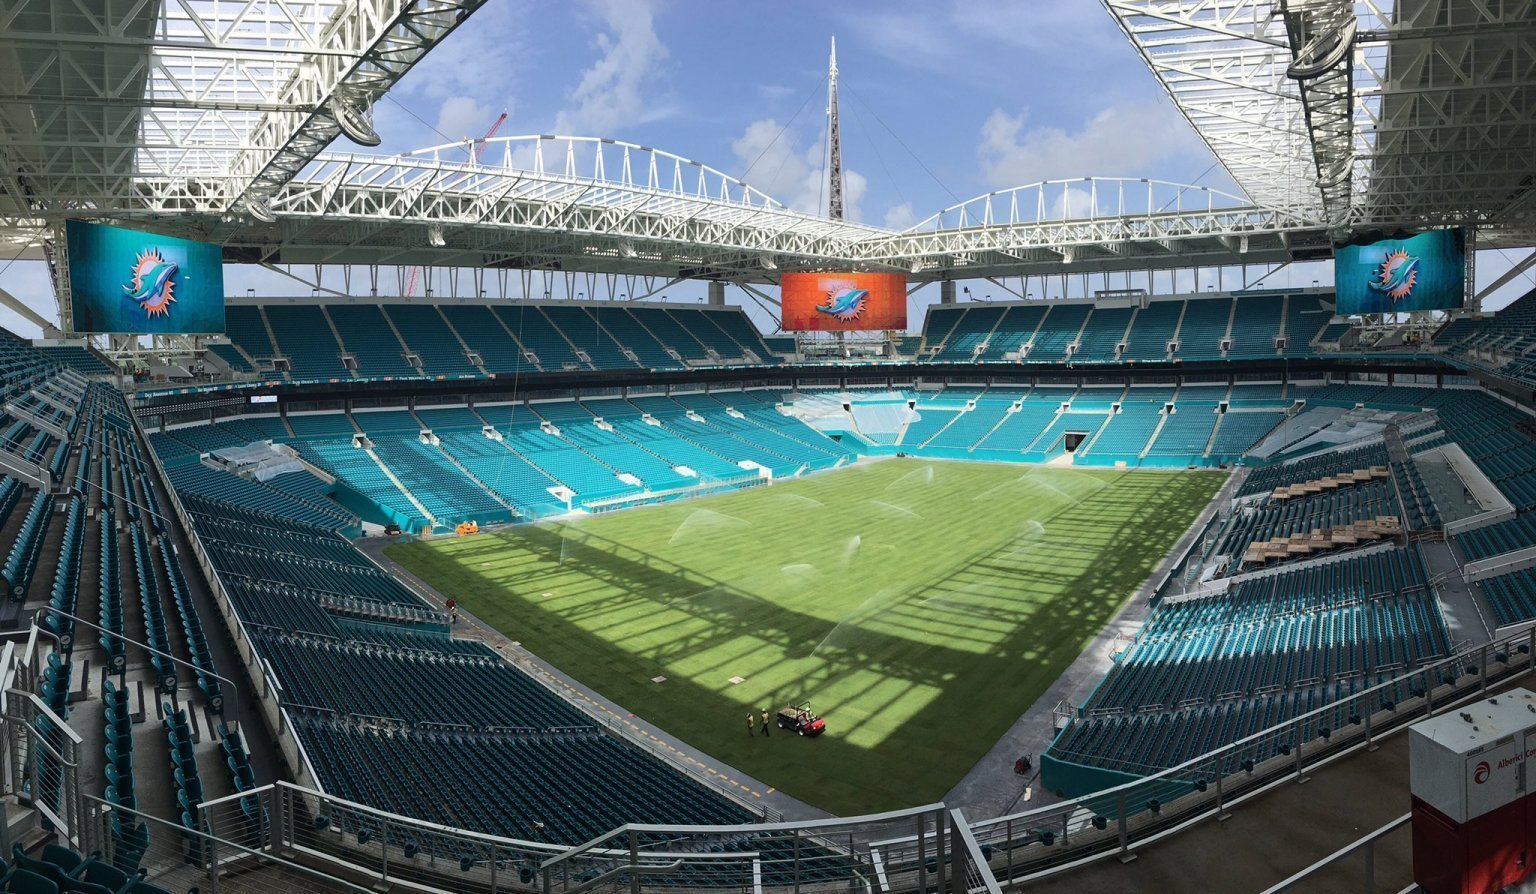 Sfl-dolphins-partner-uber-zone-tailgate-experience-20160829